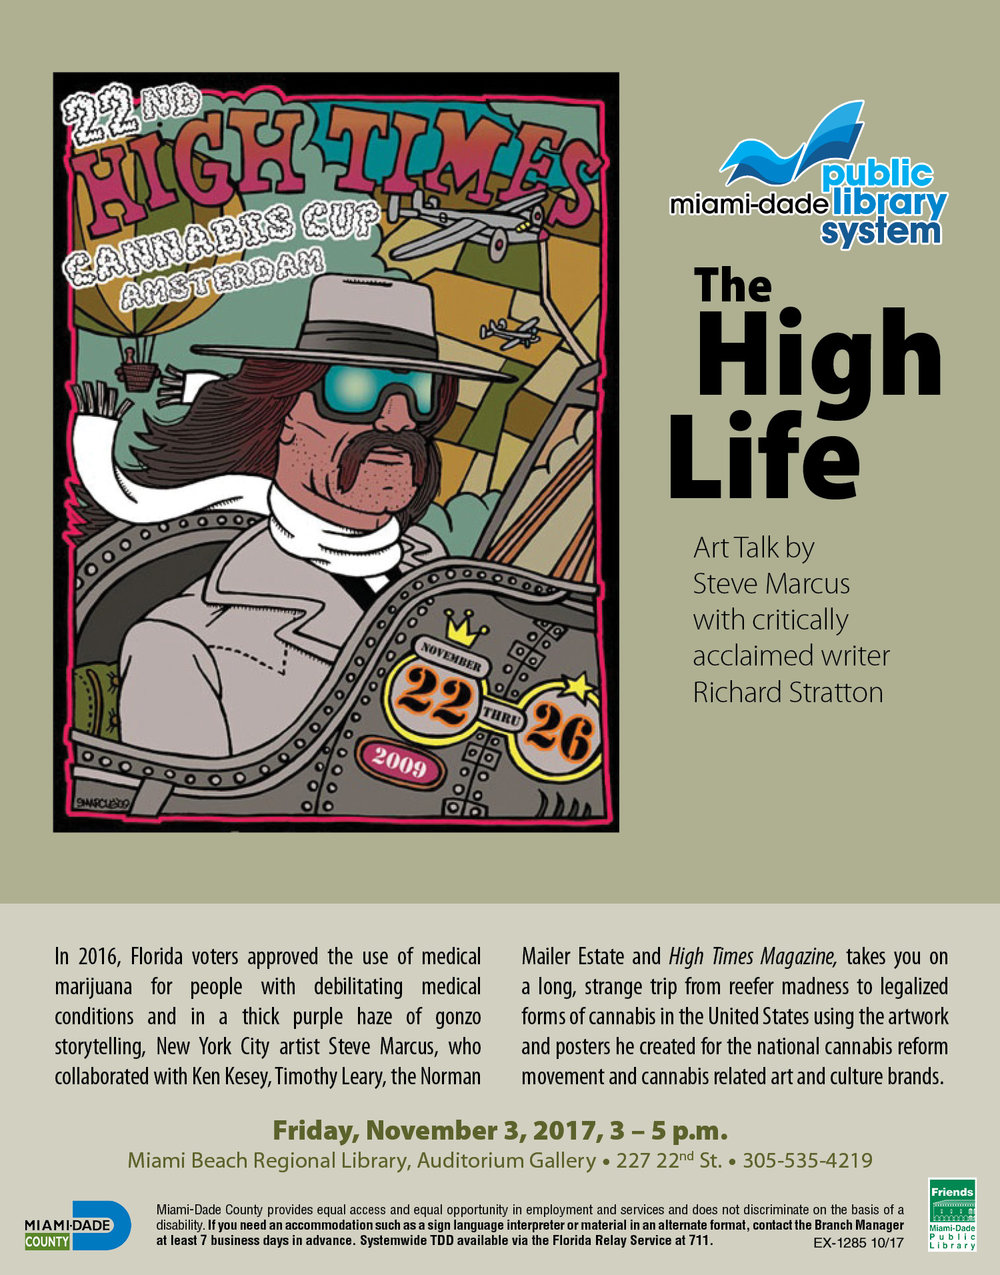 EX-1285 The High Life.jpg